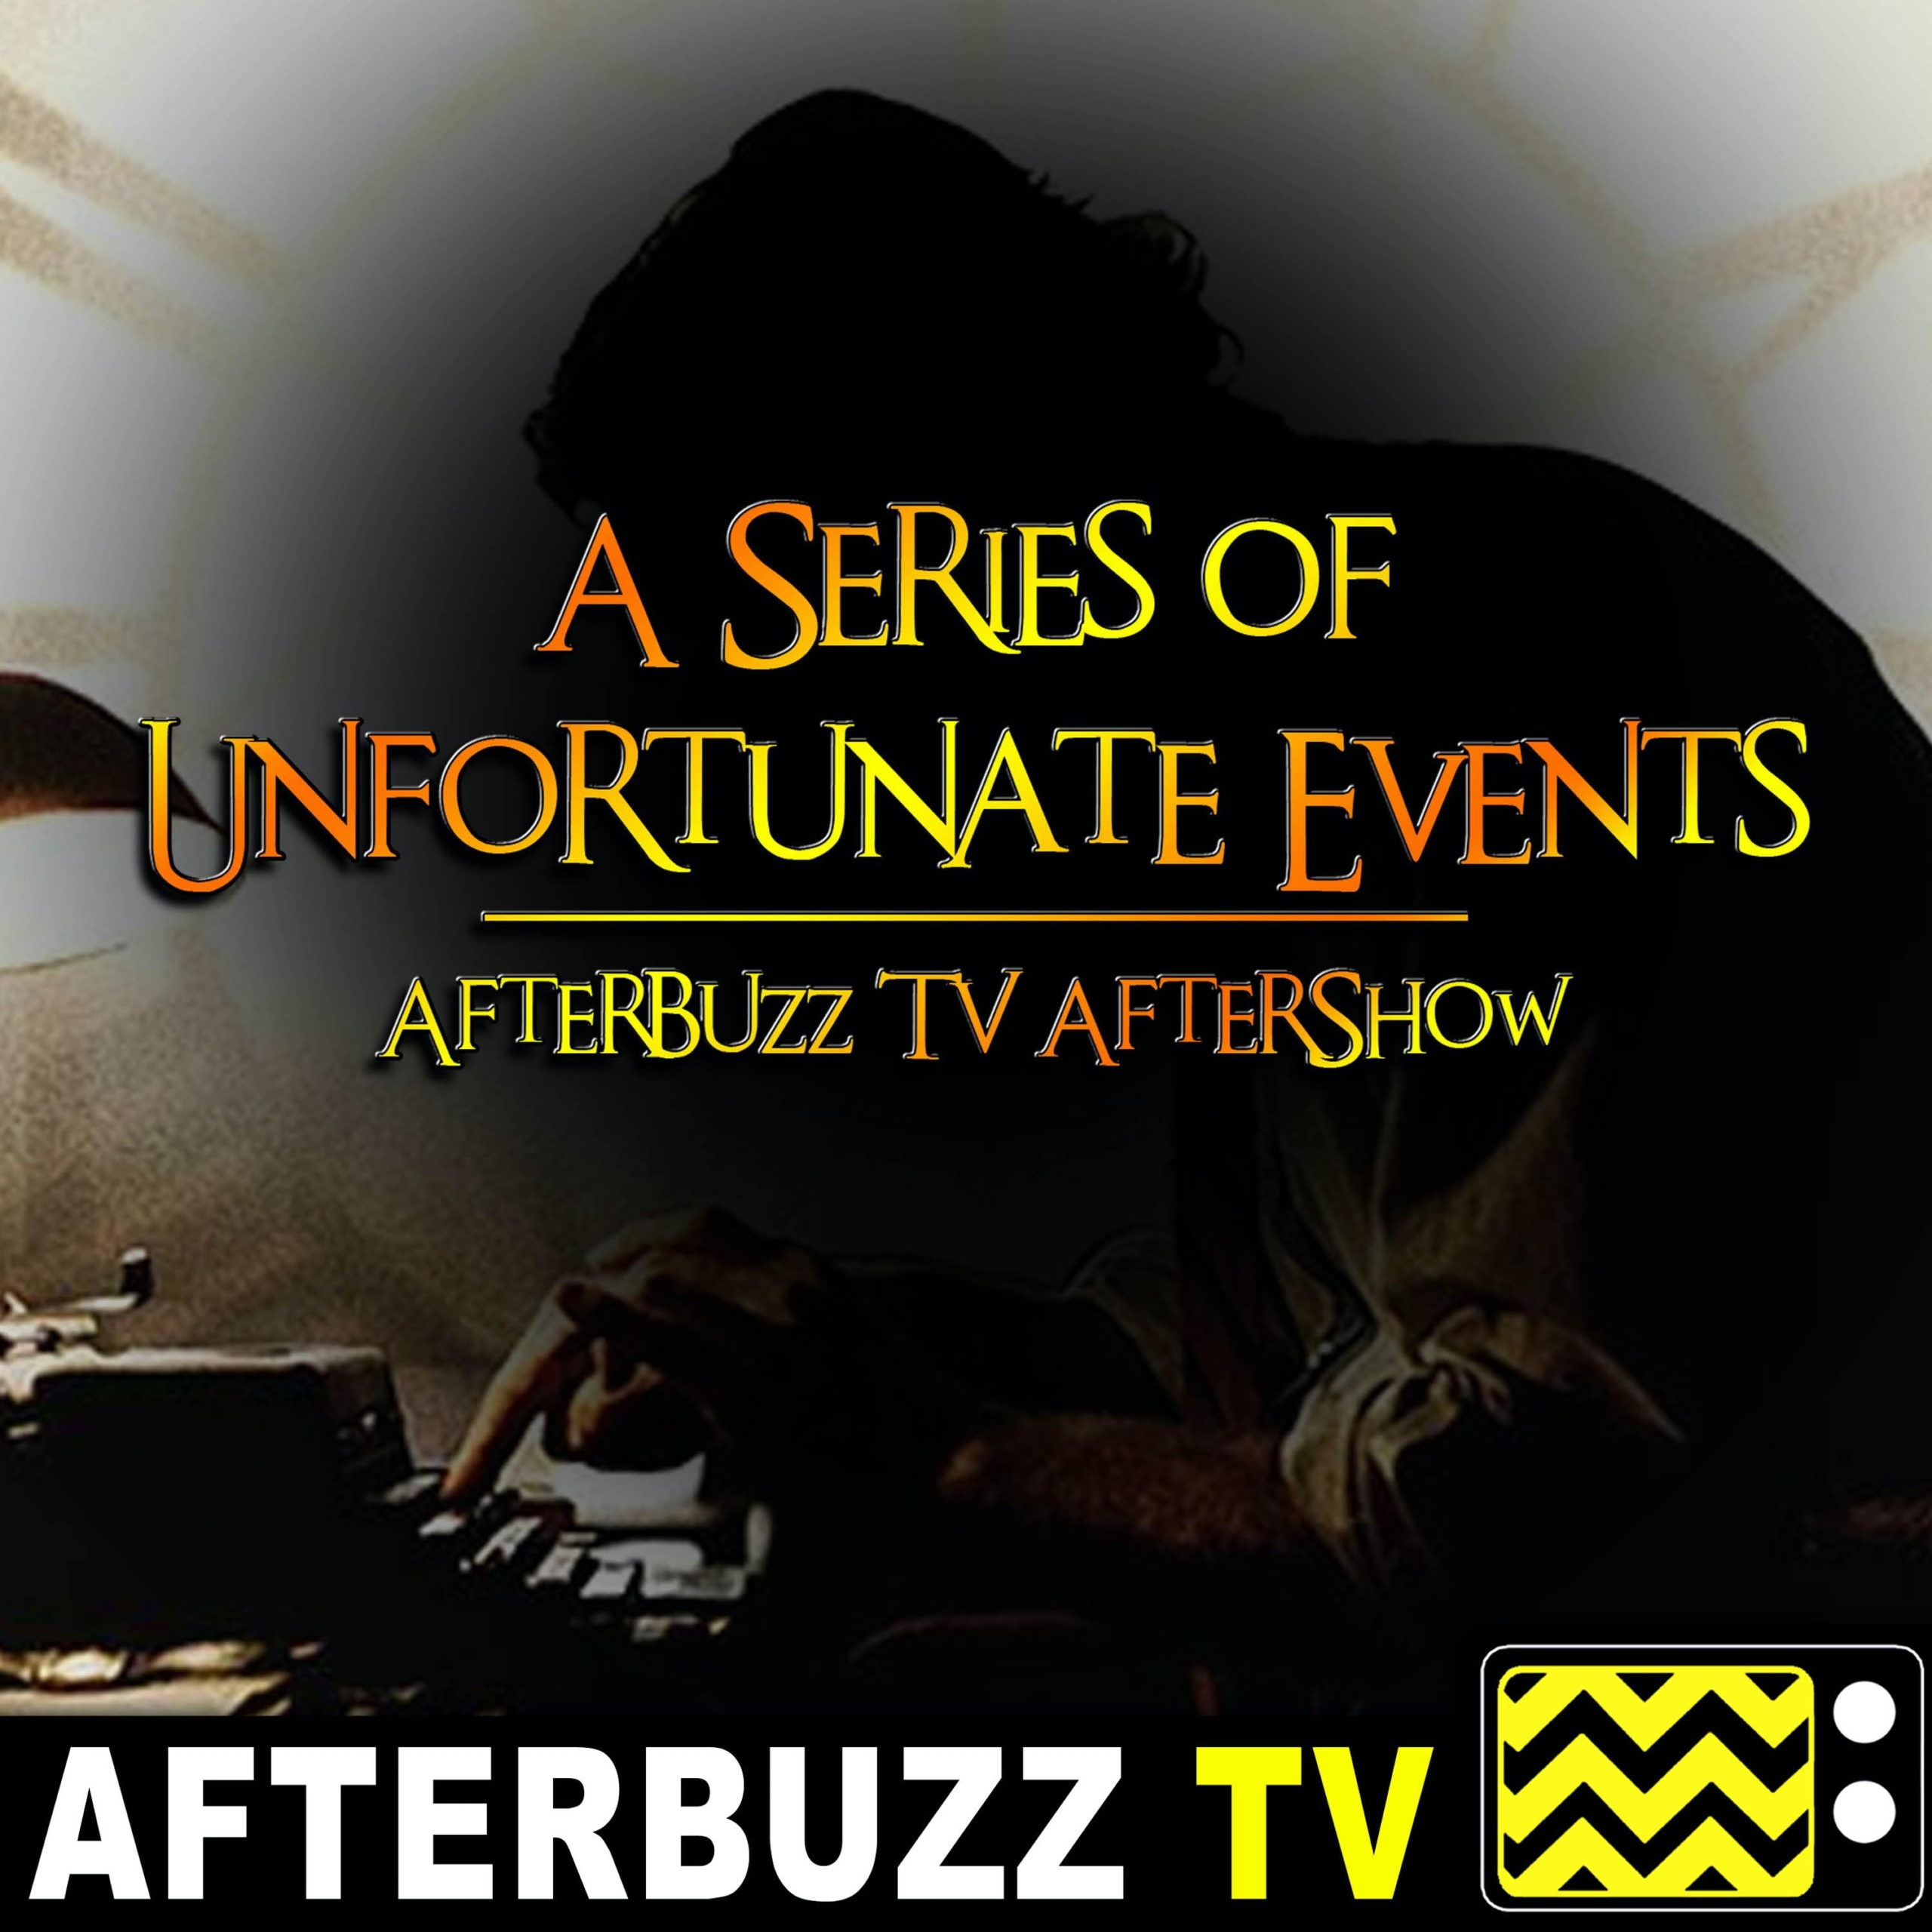 The A Series Of Unfortunate Events Podcast